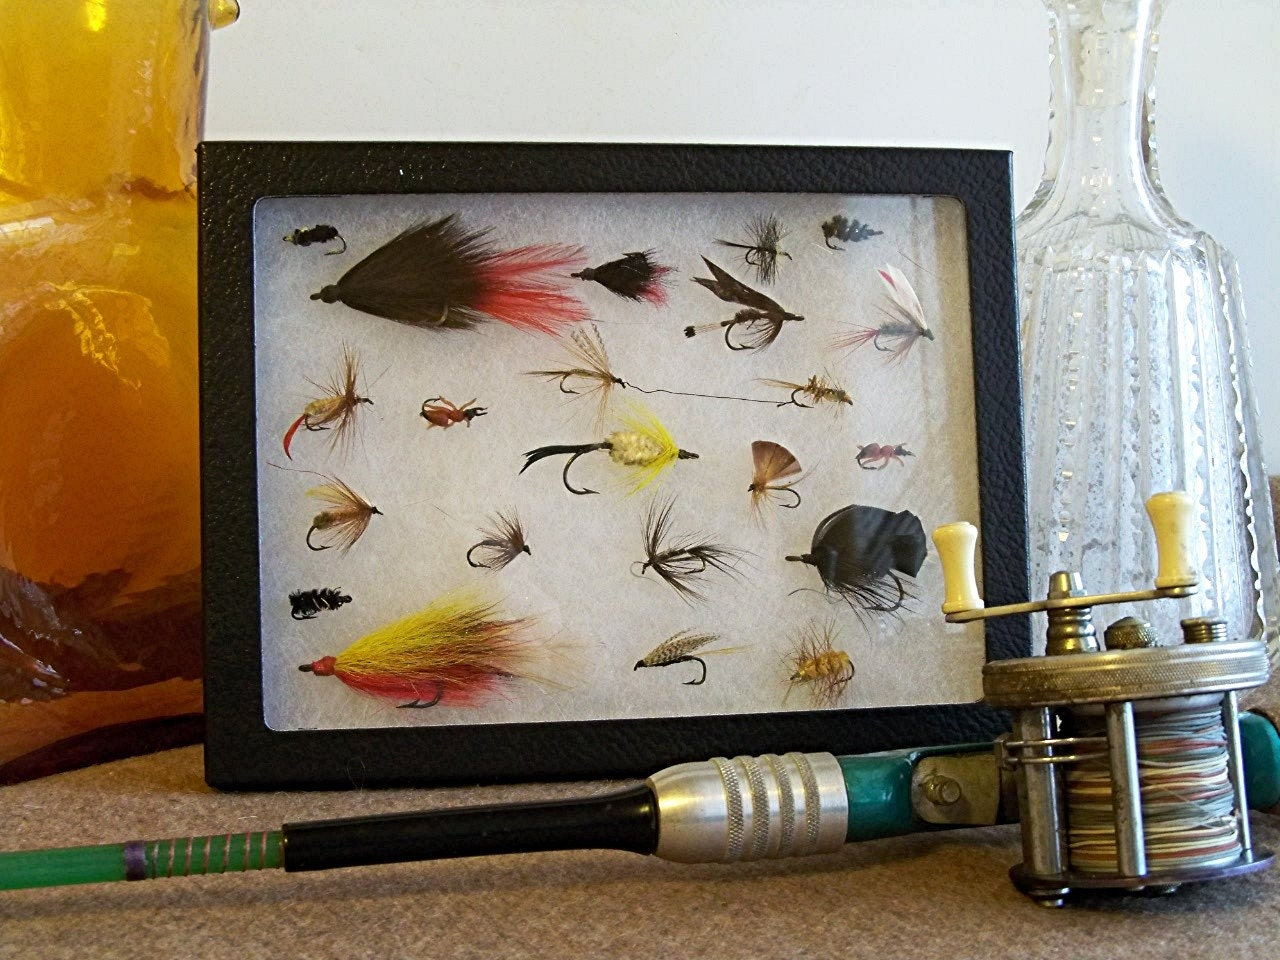 Fly fishing lures hand tied flies vintage display of by for Fishing lure display